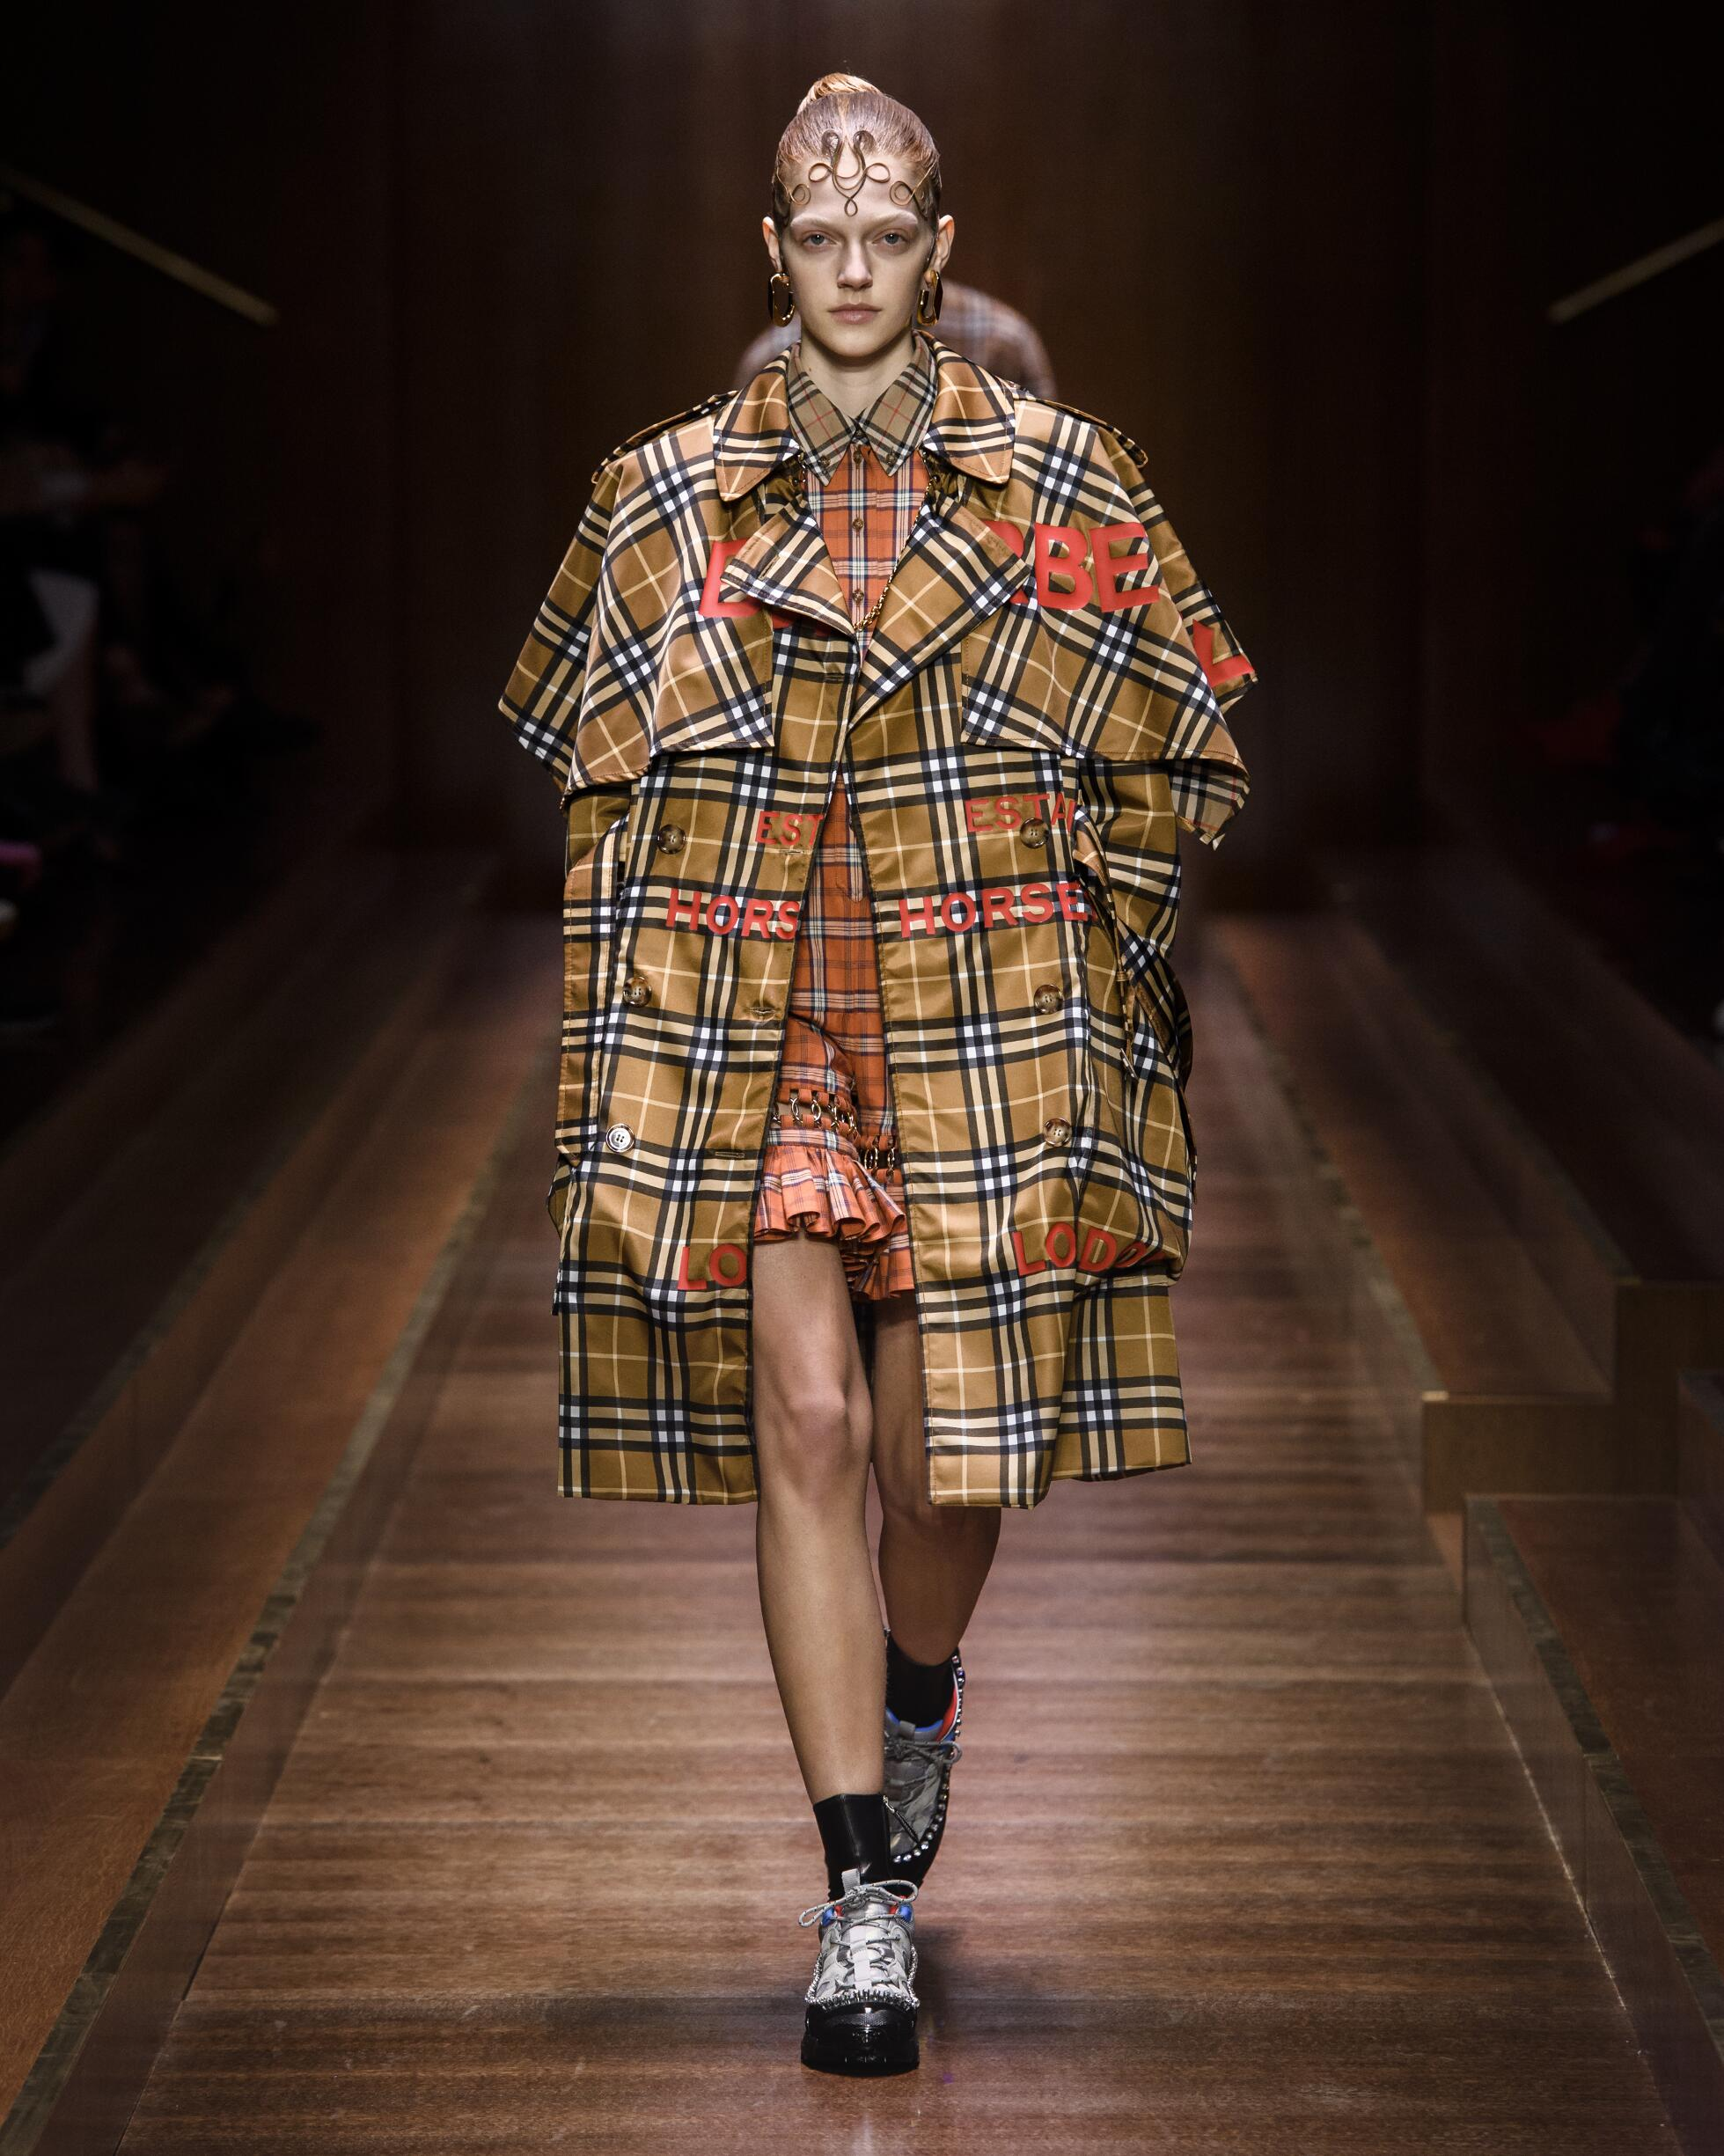 Fashion Model Burberry Catwalk